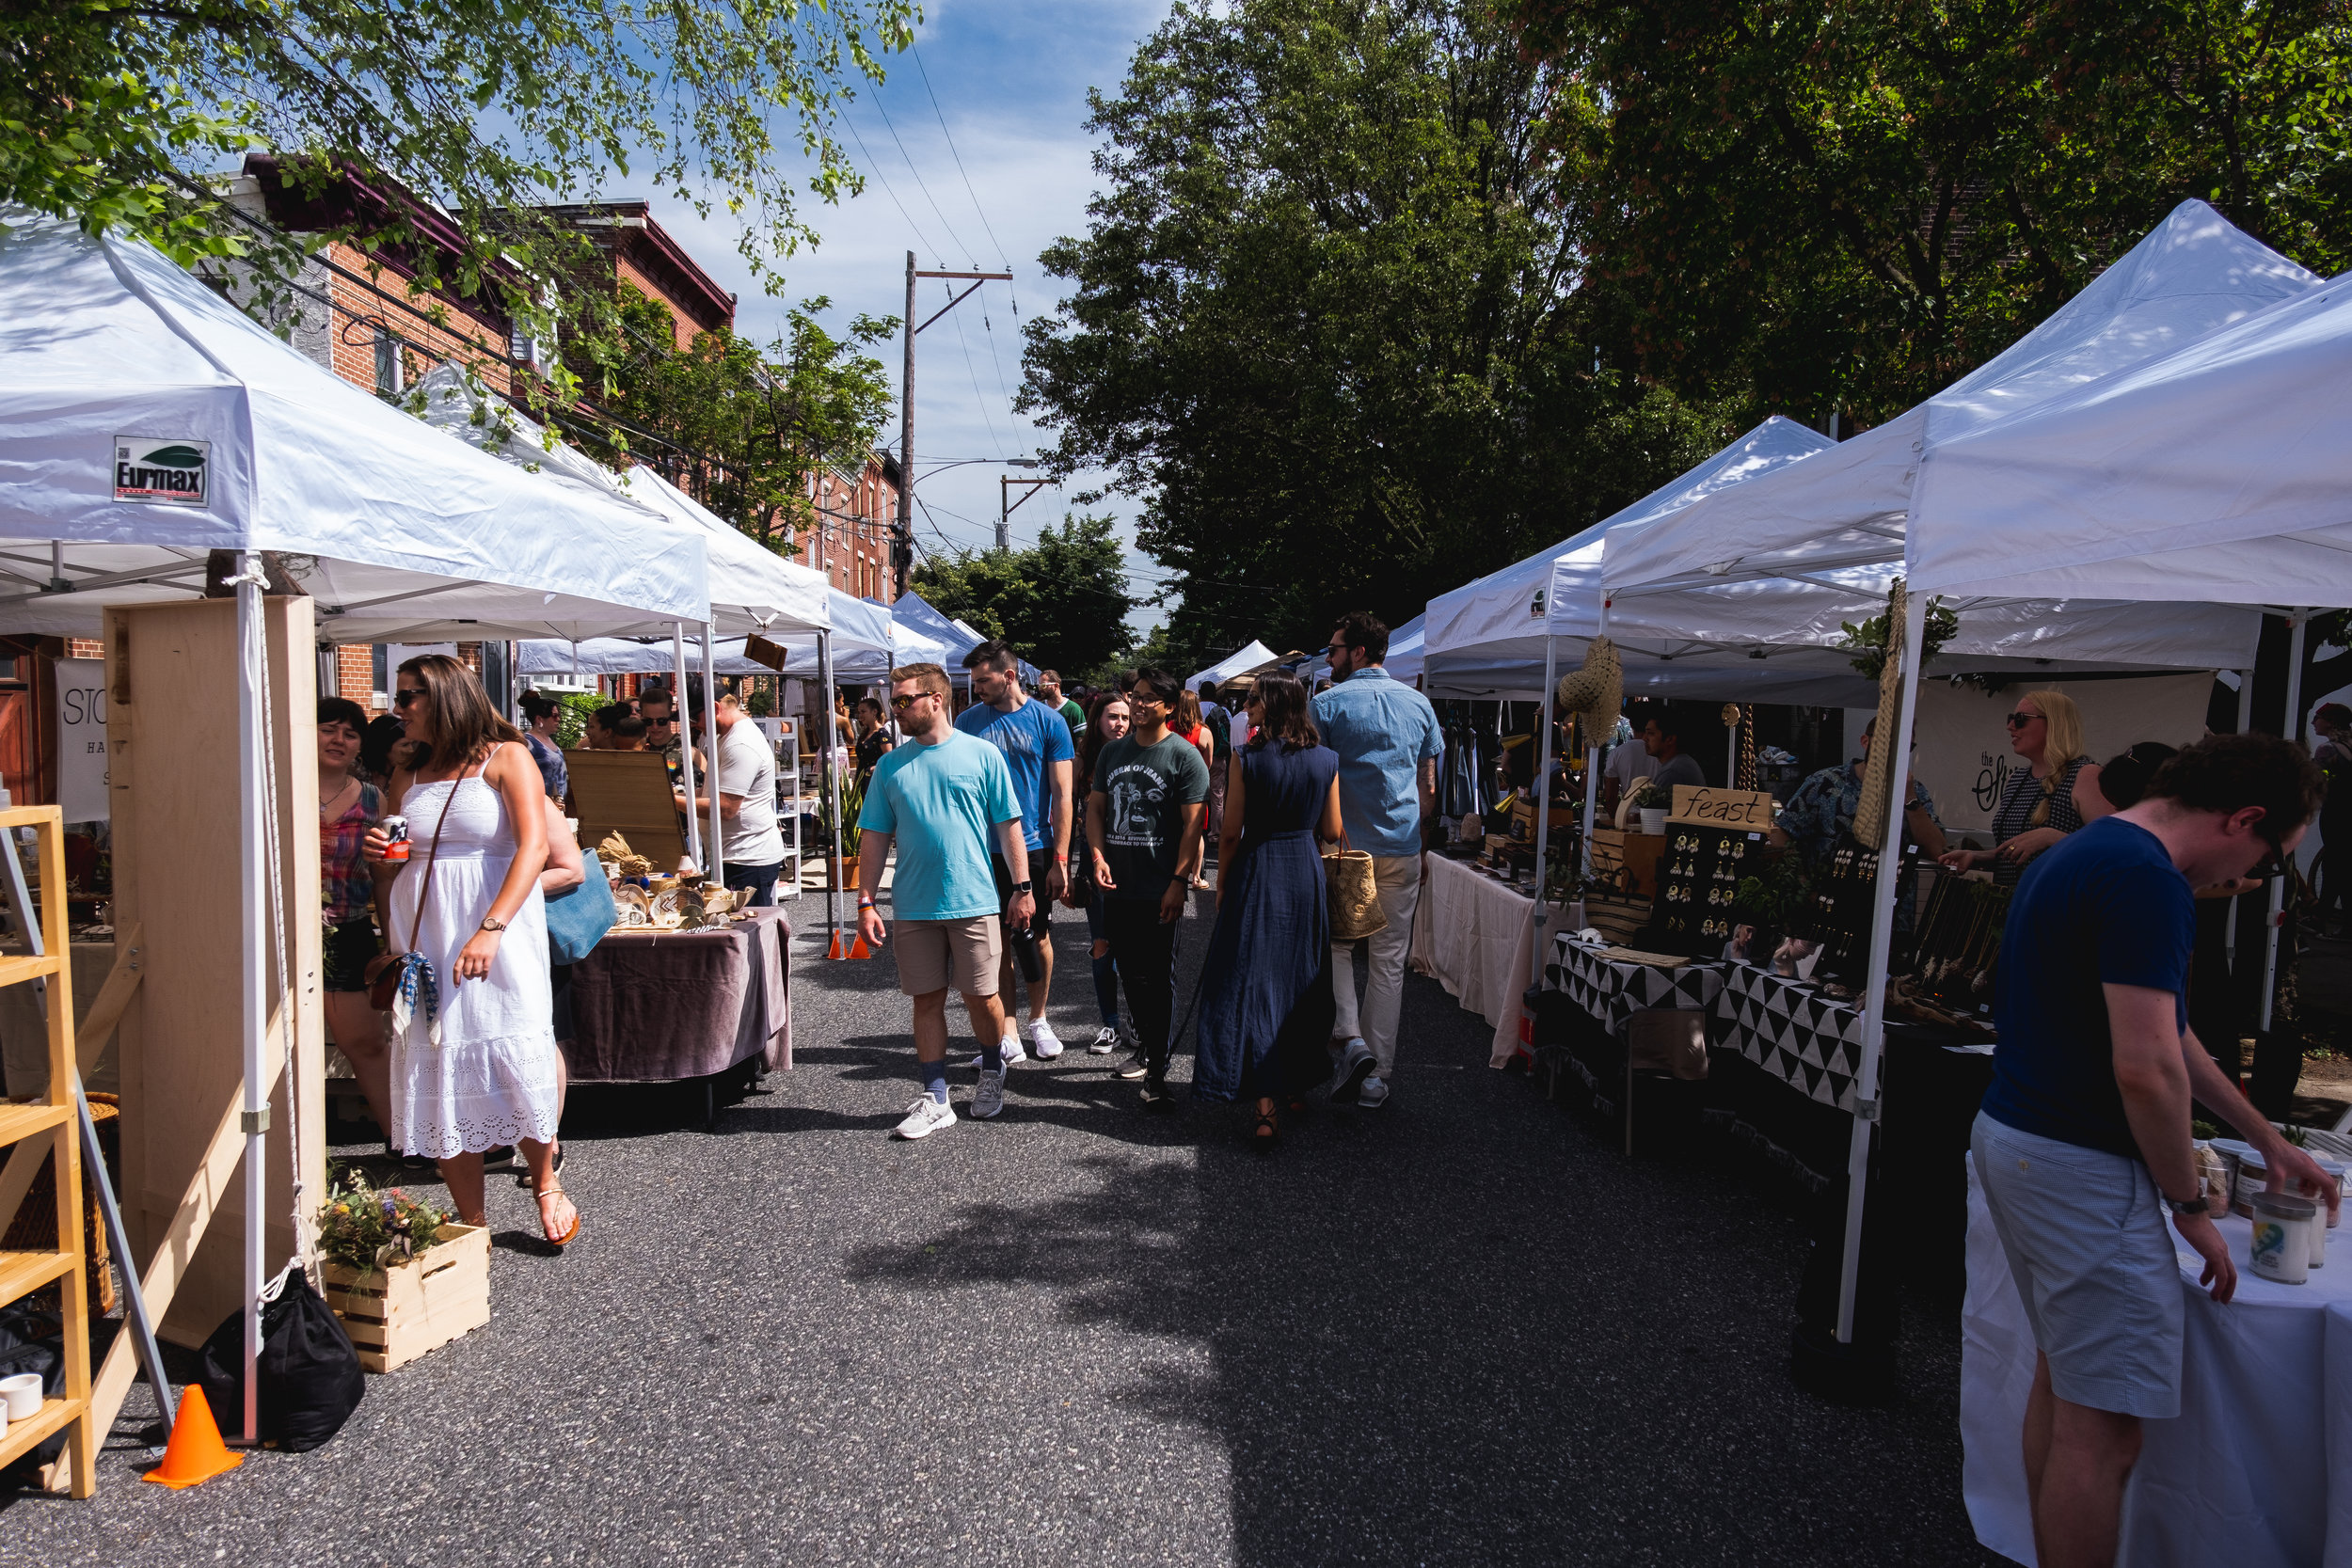 2019_PHILLY BEER WEEK_FISHTOWN FESTIVALE_EVENTS_THE PHILLY CHECKLIST-15.jpg